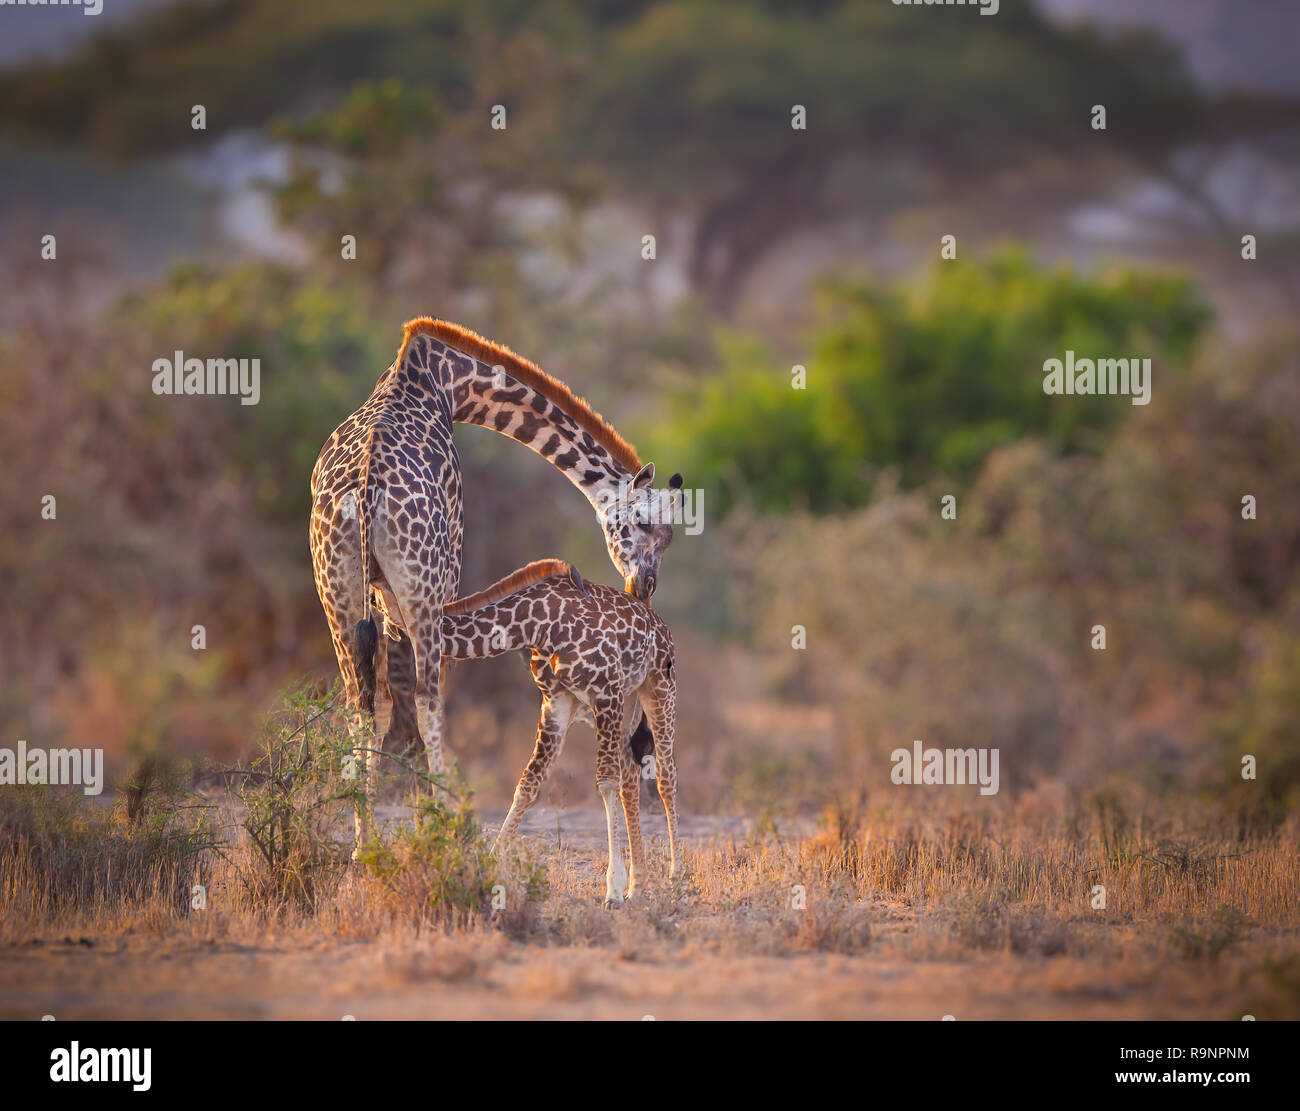 The Kiss. Mother giraffe kisses her nursing child - Stock Image